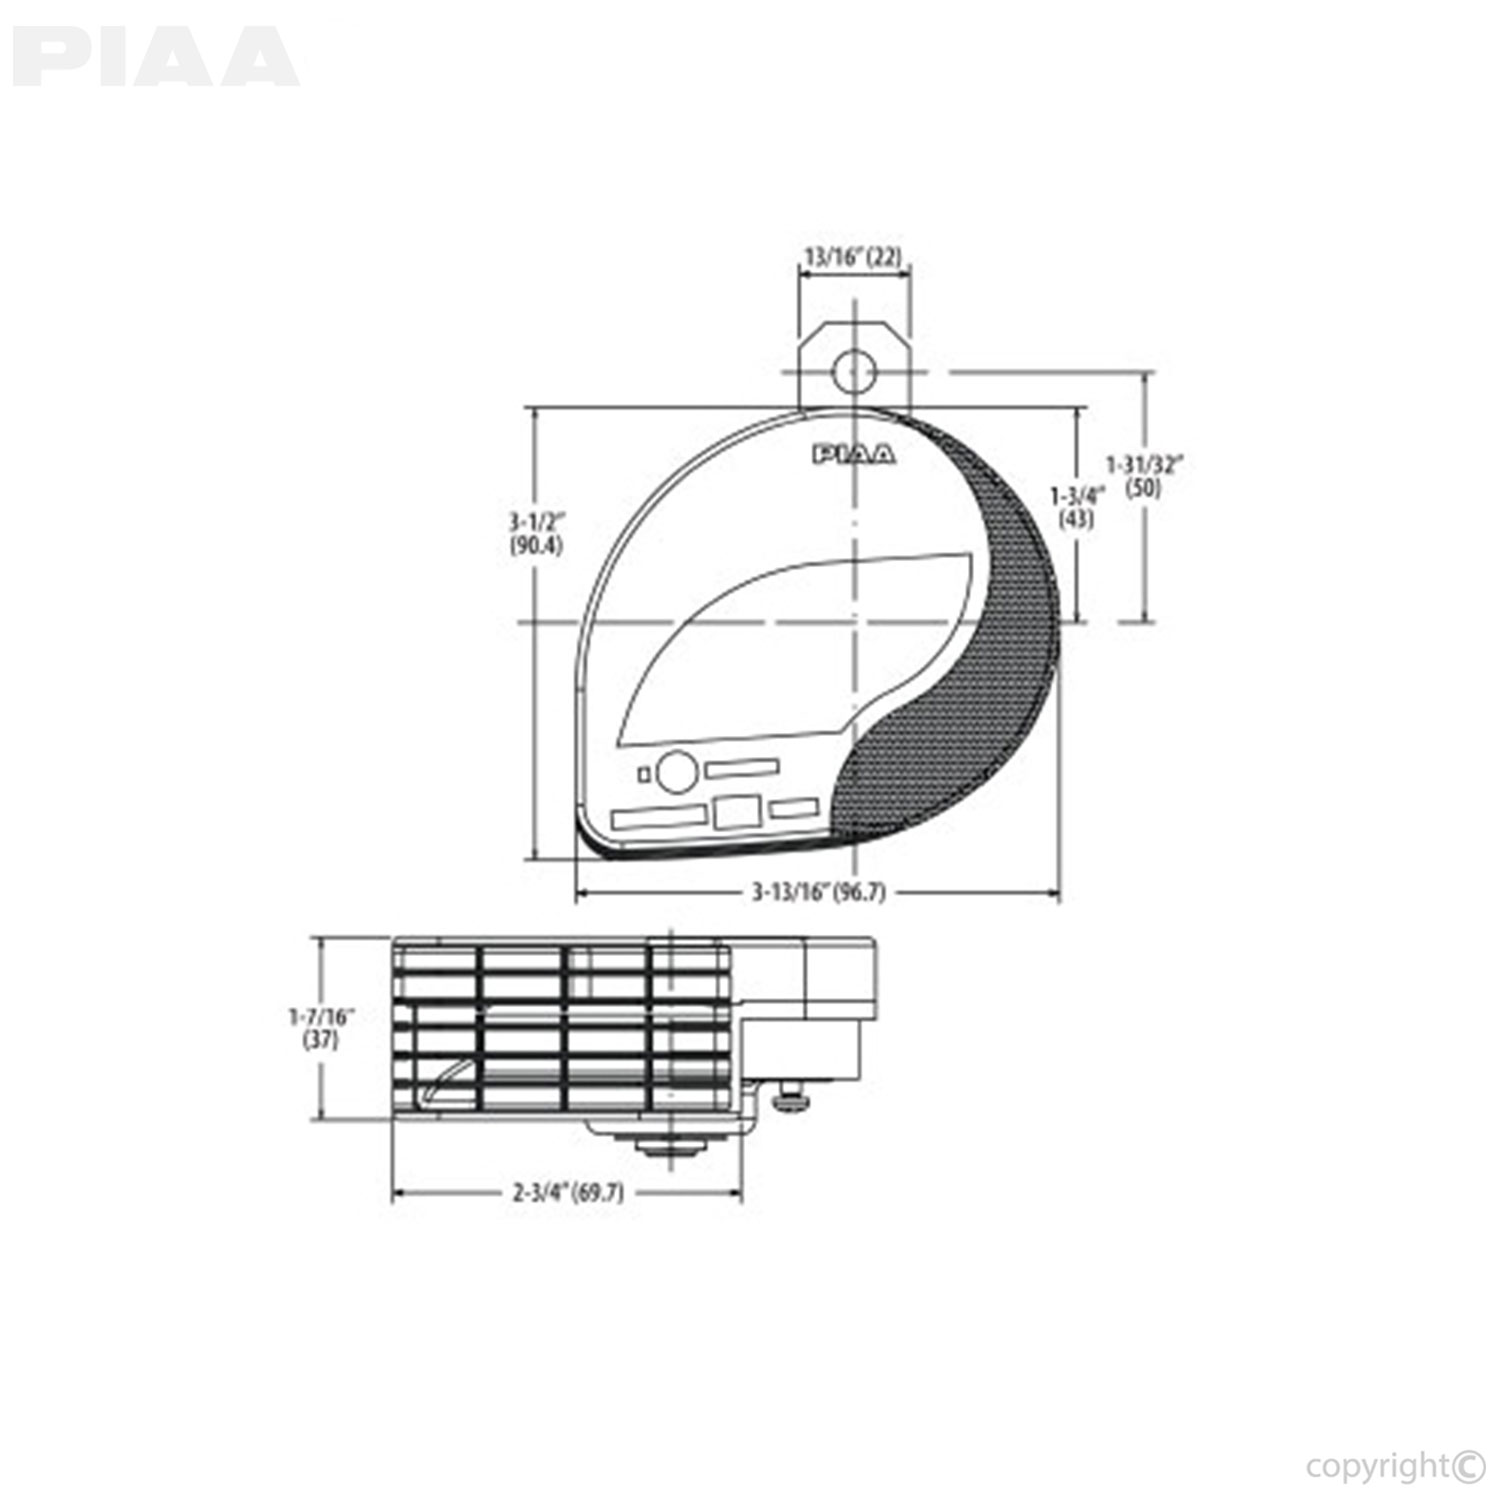 wiring diagram for piaa lights - wiring diagram and schematics piaa lights wiring diagram #4